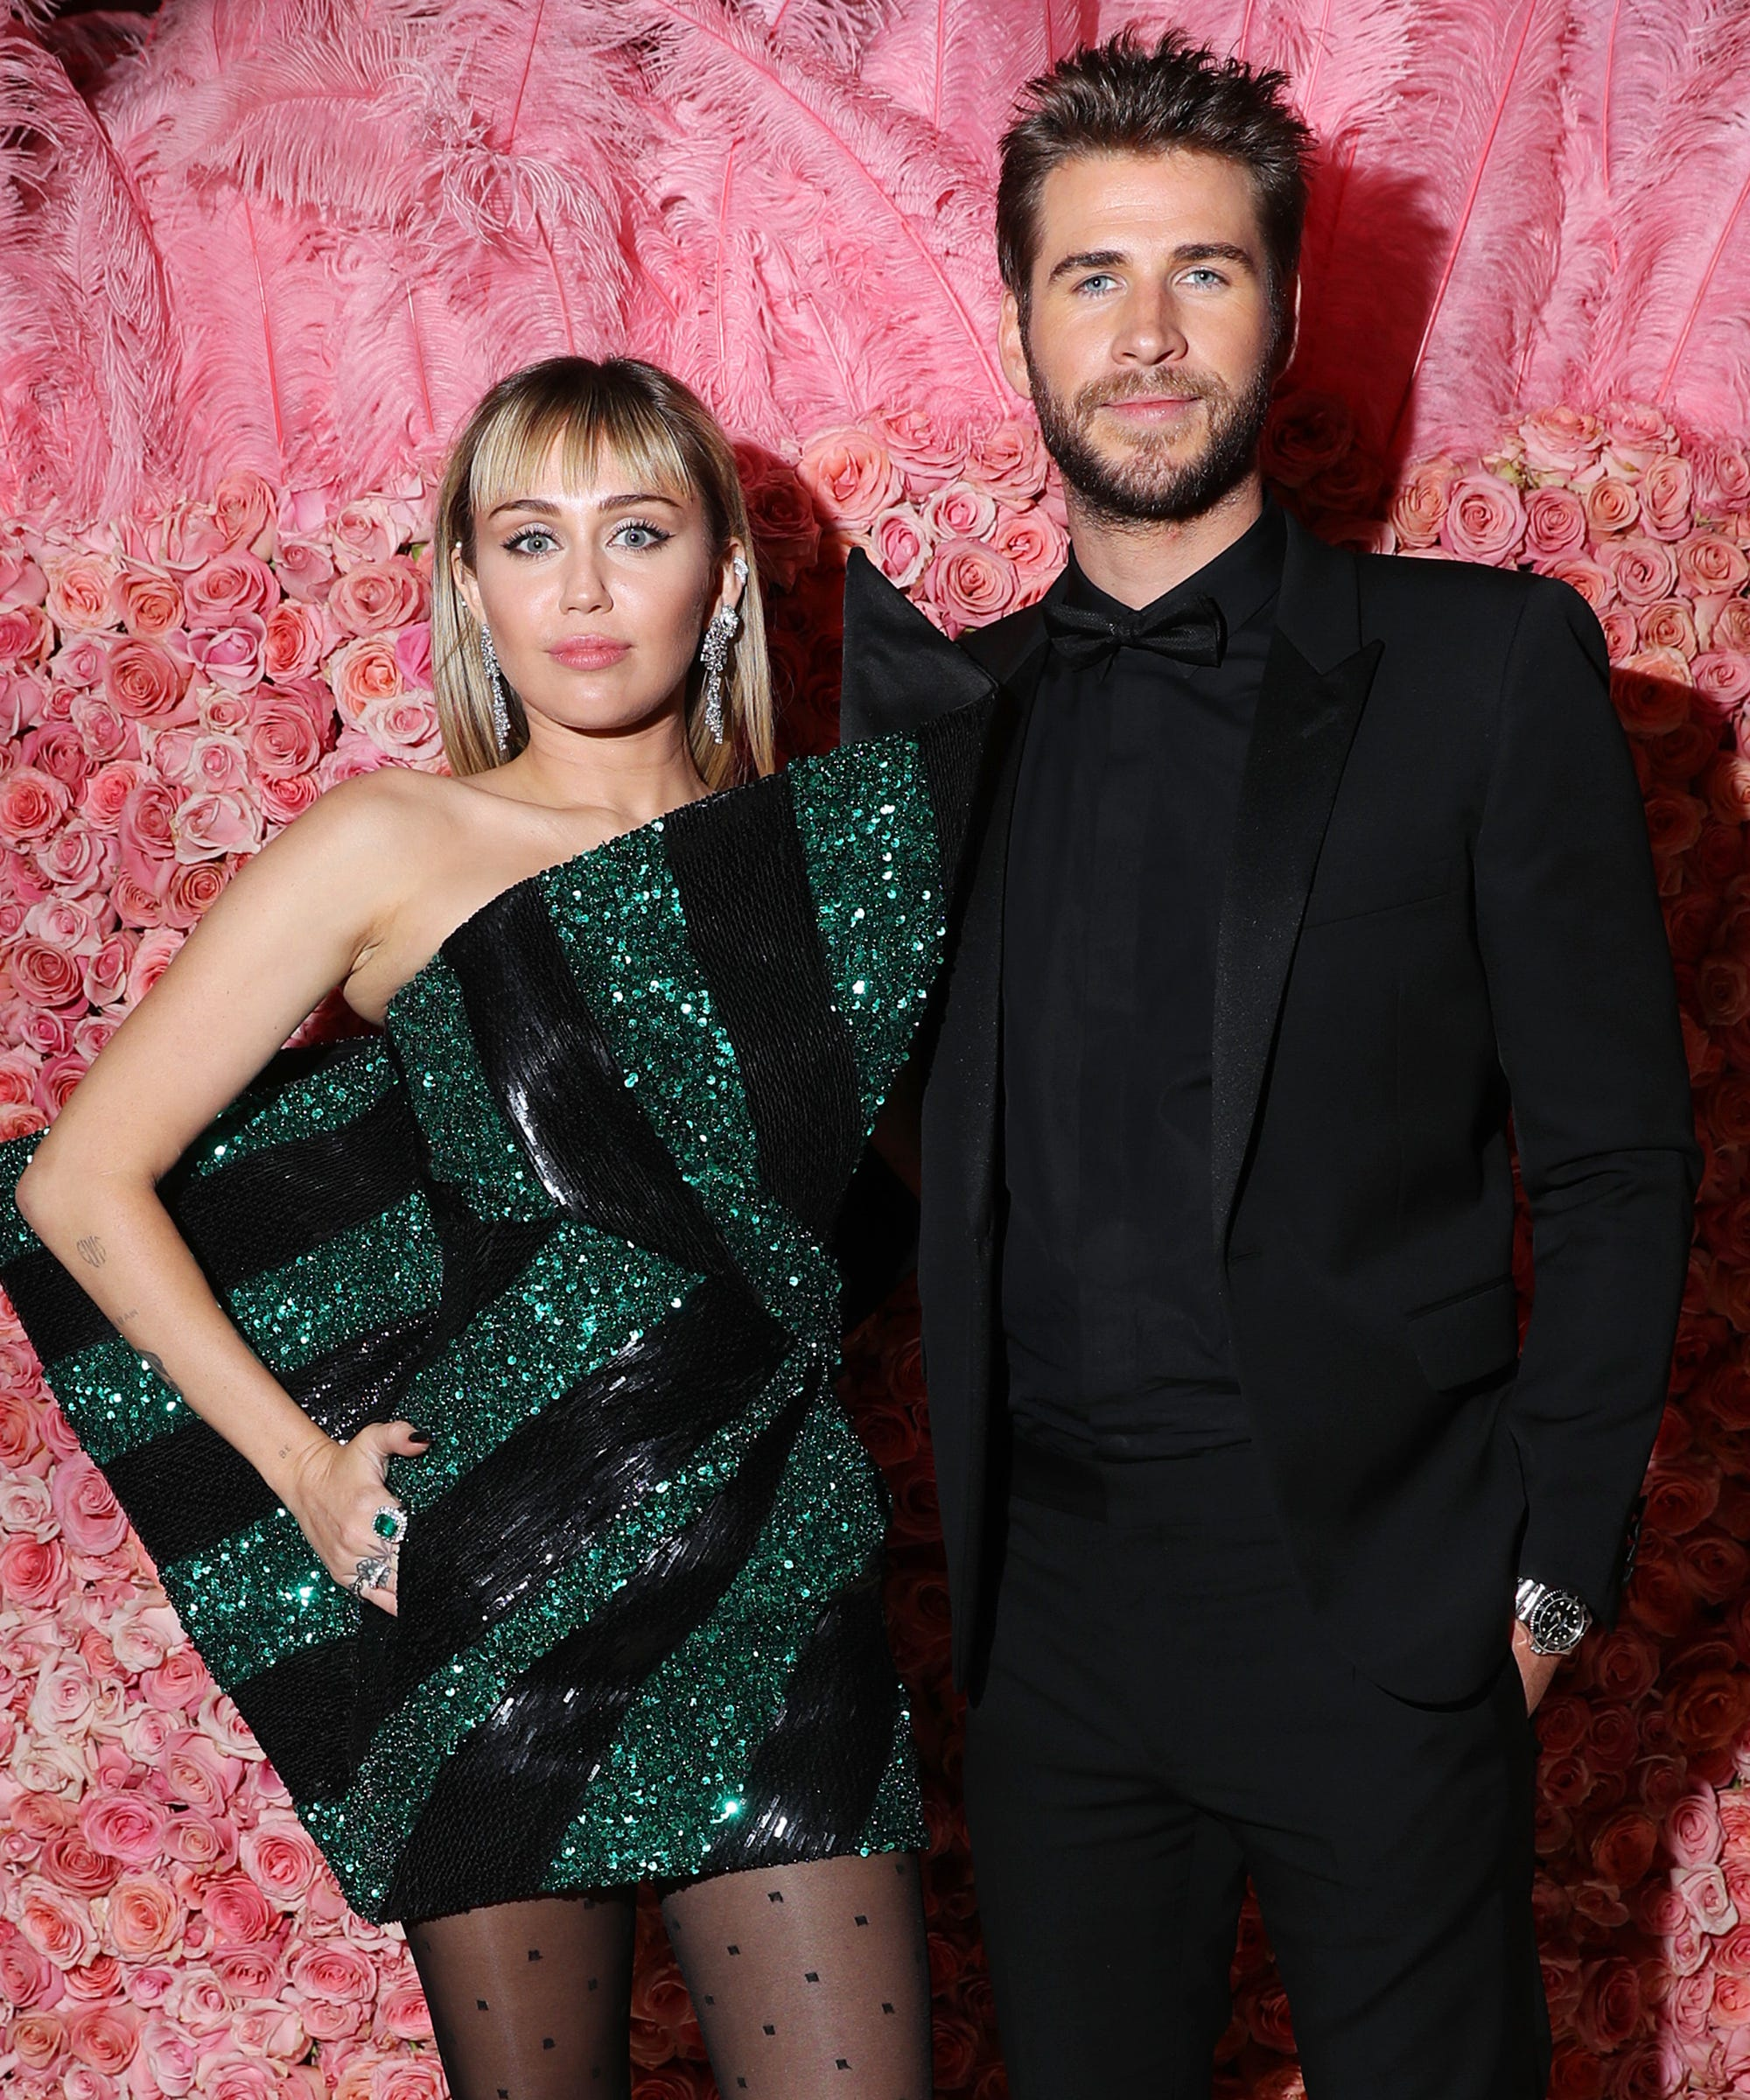 Liam Hemsworth Reportedly Files For Divorce From Miley Cyrus 10 Days After Split